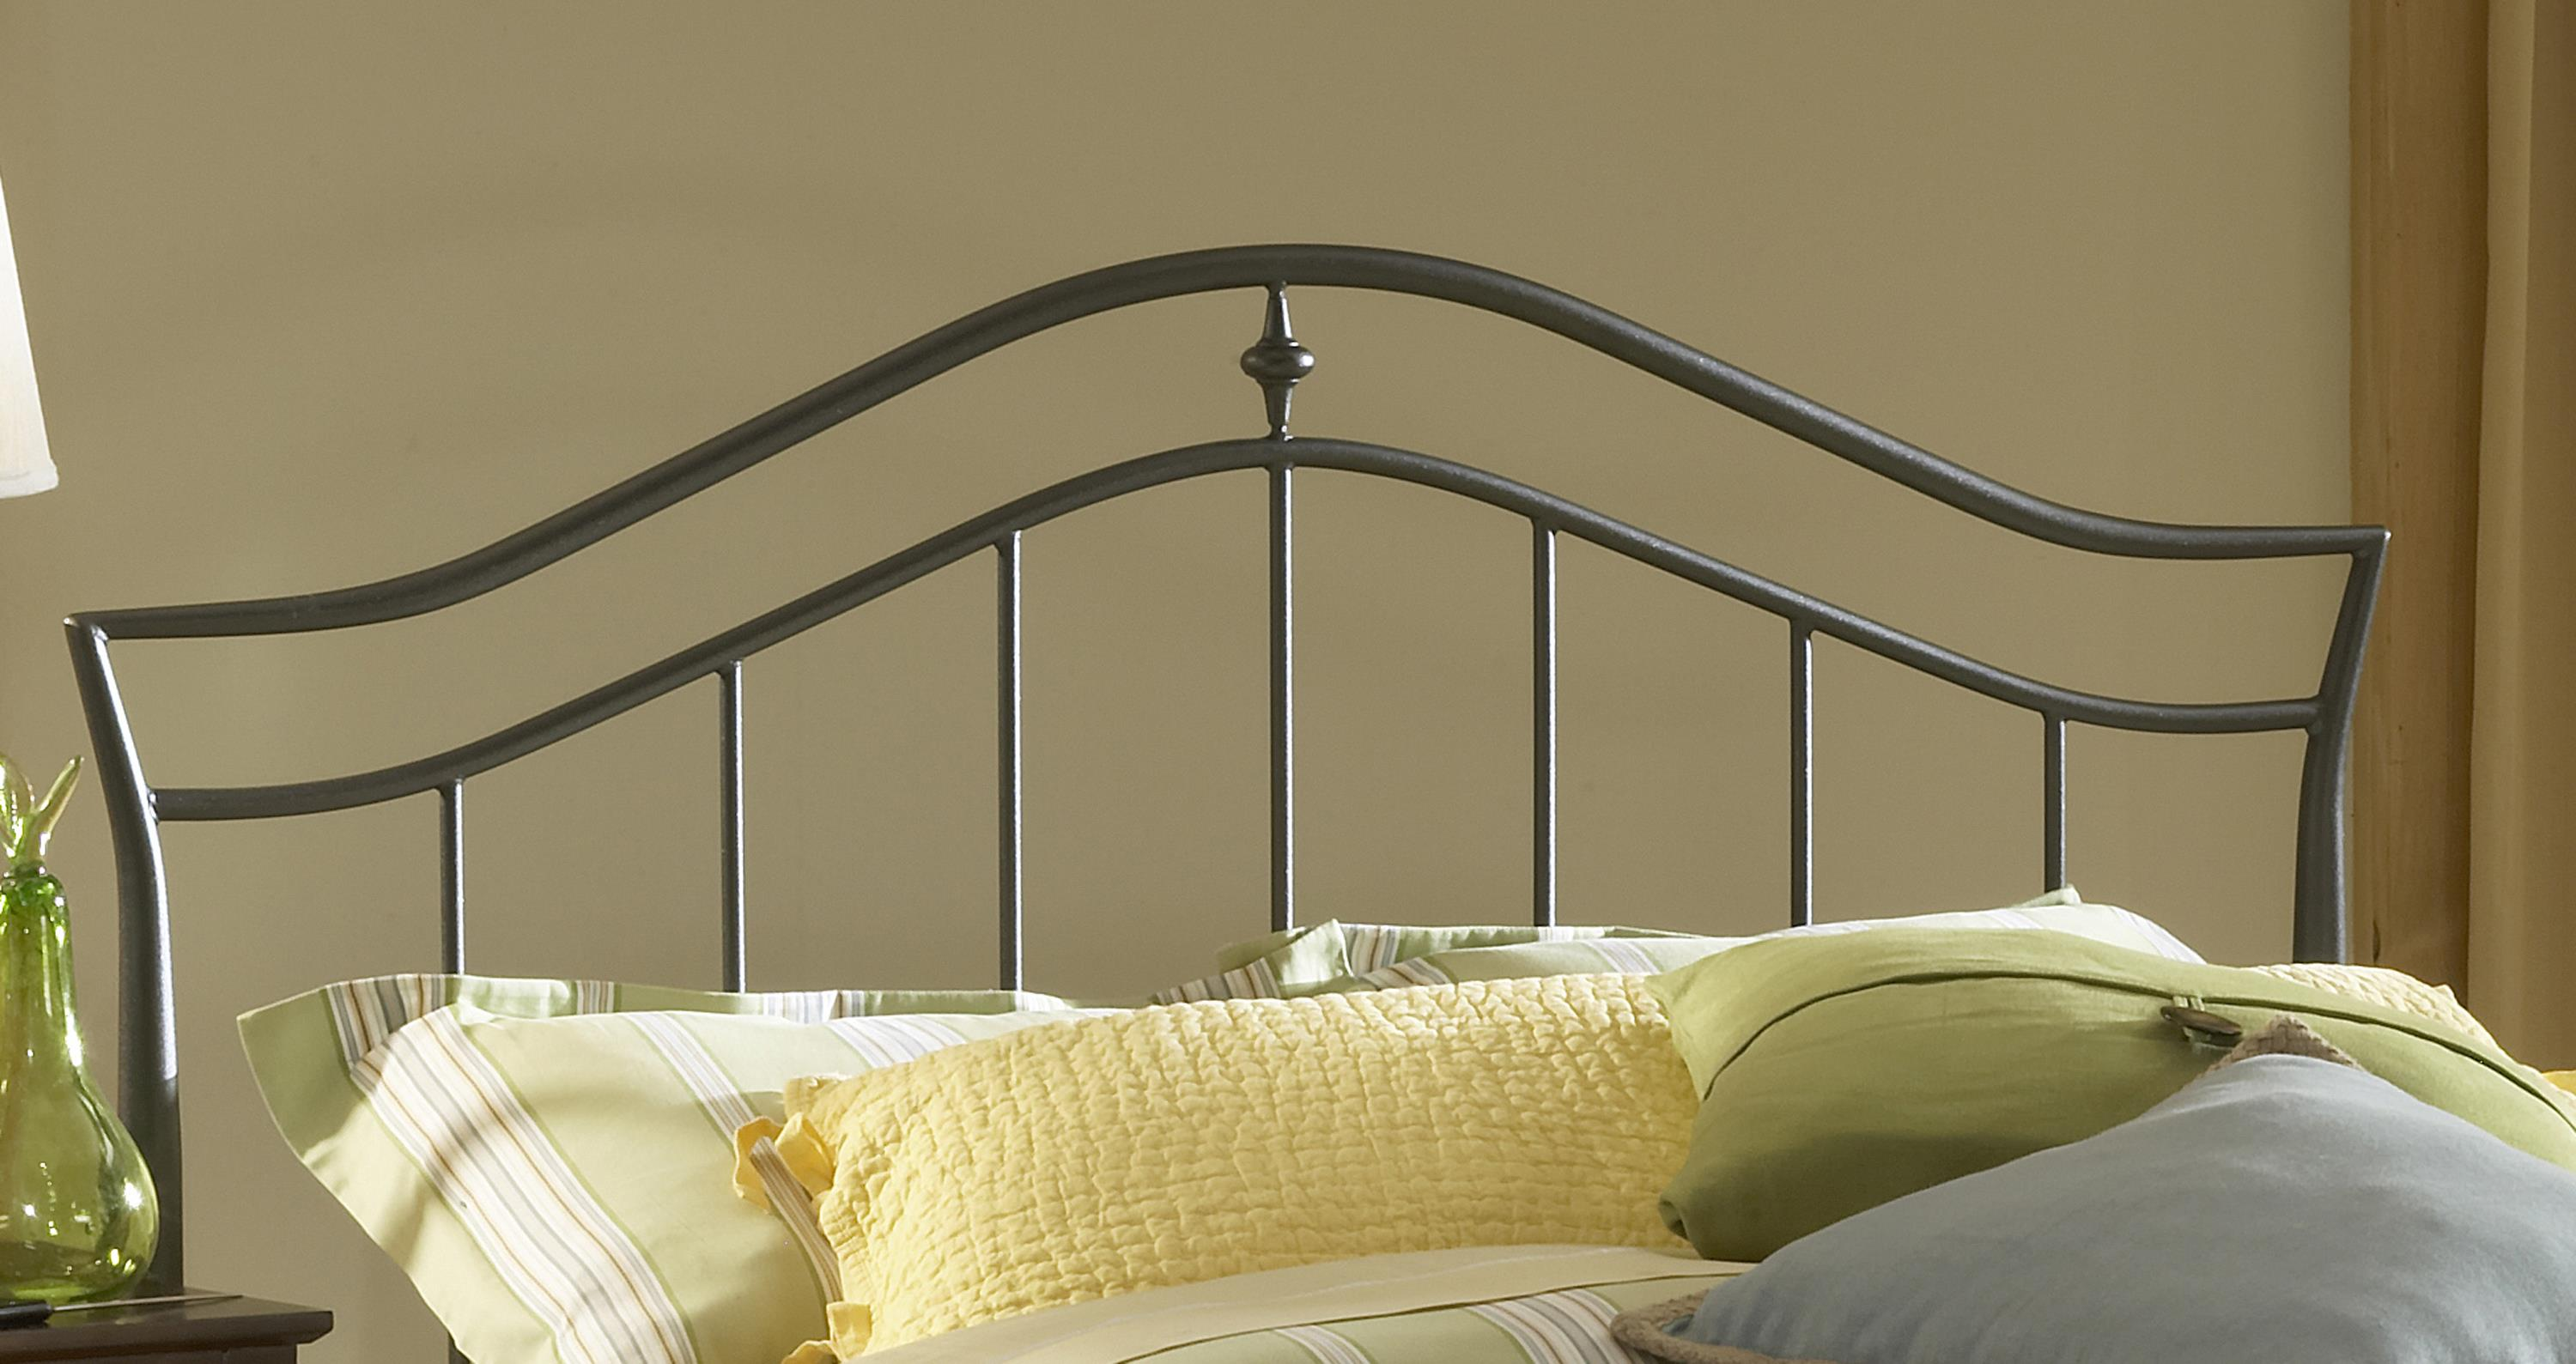 Hillsdale Metal Beds Imperial Full/Queen Headboard with Rails - Item Number: 1546HFQR